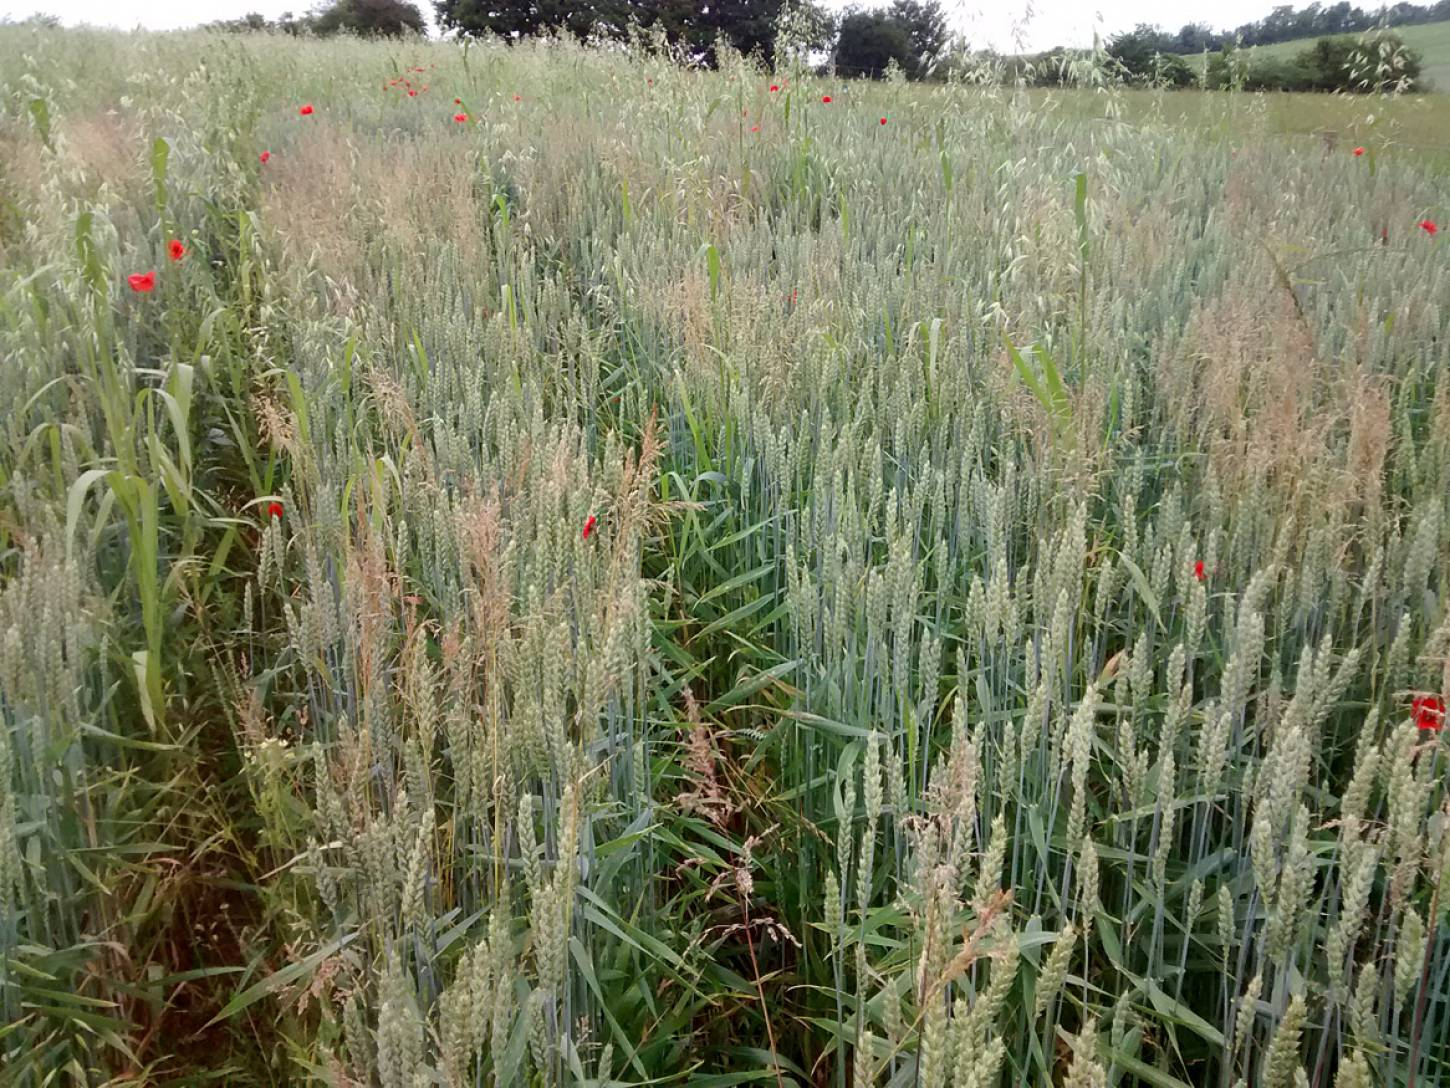 Perry Court biodynamic Farm review - modern Nelson wheat overgrown - 3:50pm&nbsp;23<sup>rd</sup>&nbsp;Jun.&nbsp;'15  <a href='http://maps.google.com/?t=h&q=51.241333,1.021452&z=15' target=_blank><img src='http://www.brockwell-bake.org.uk/img/marker.png' style='border:none;vertical-align:top' height=16px></a>